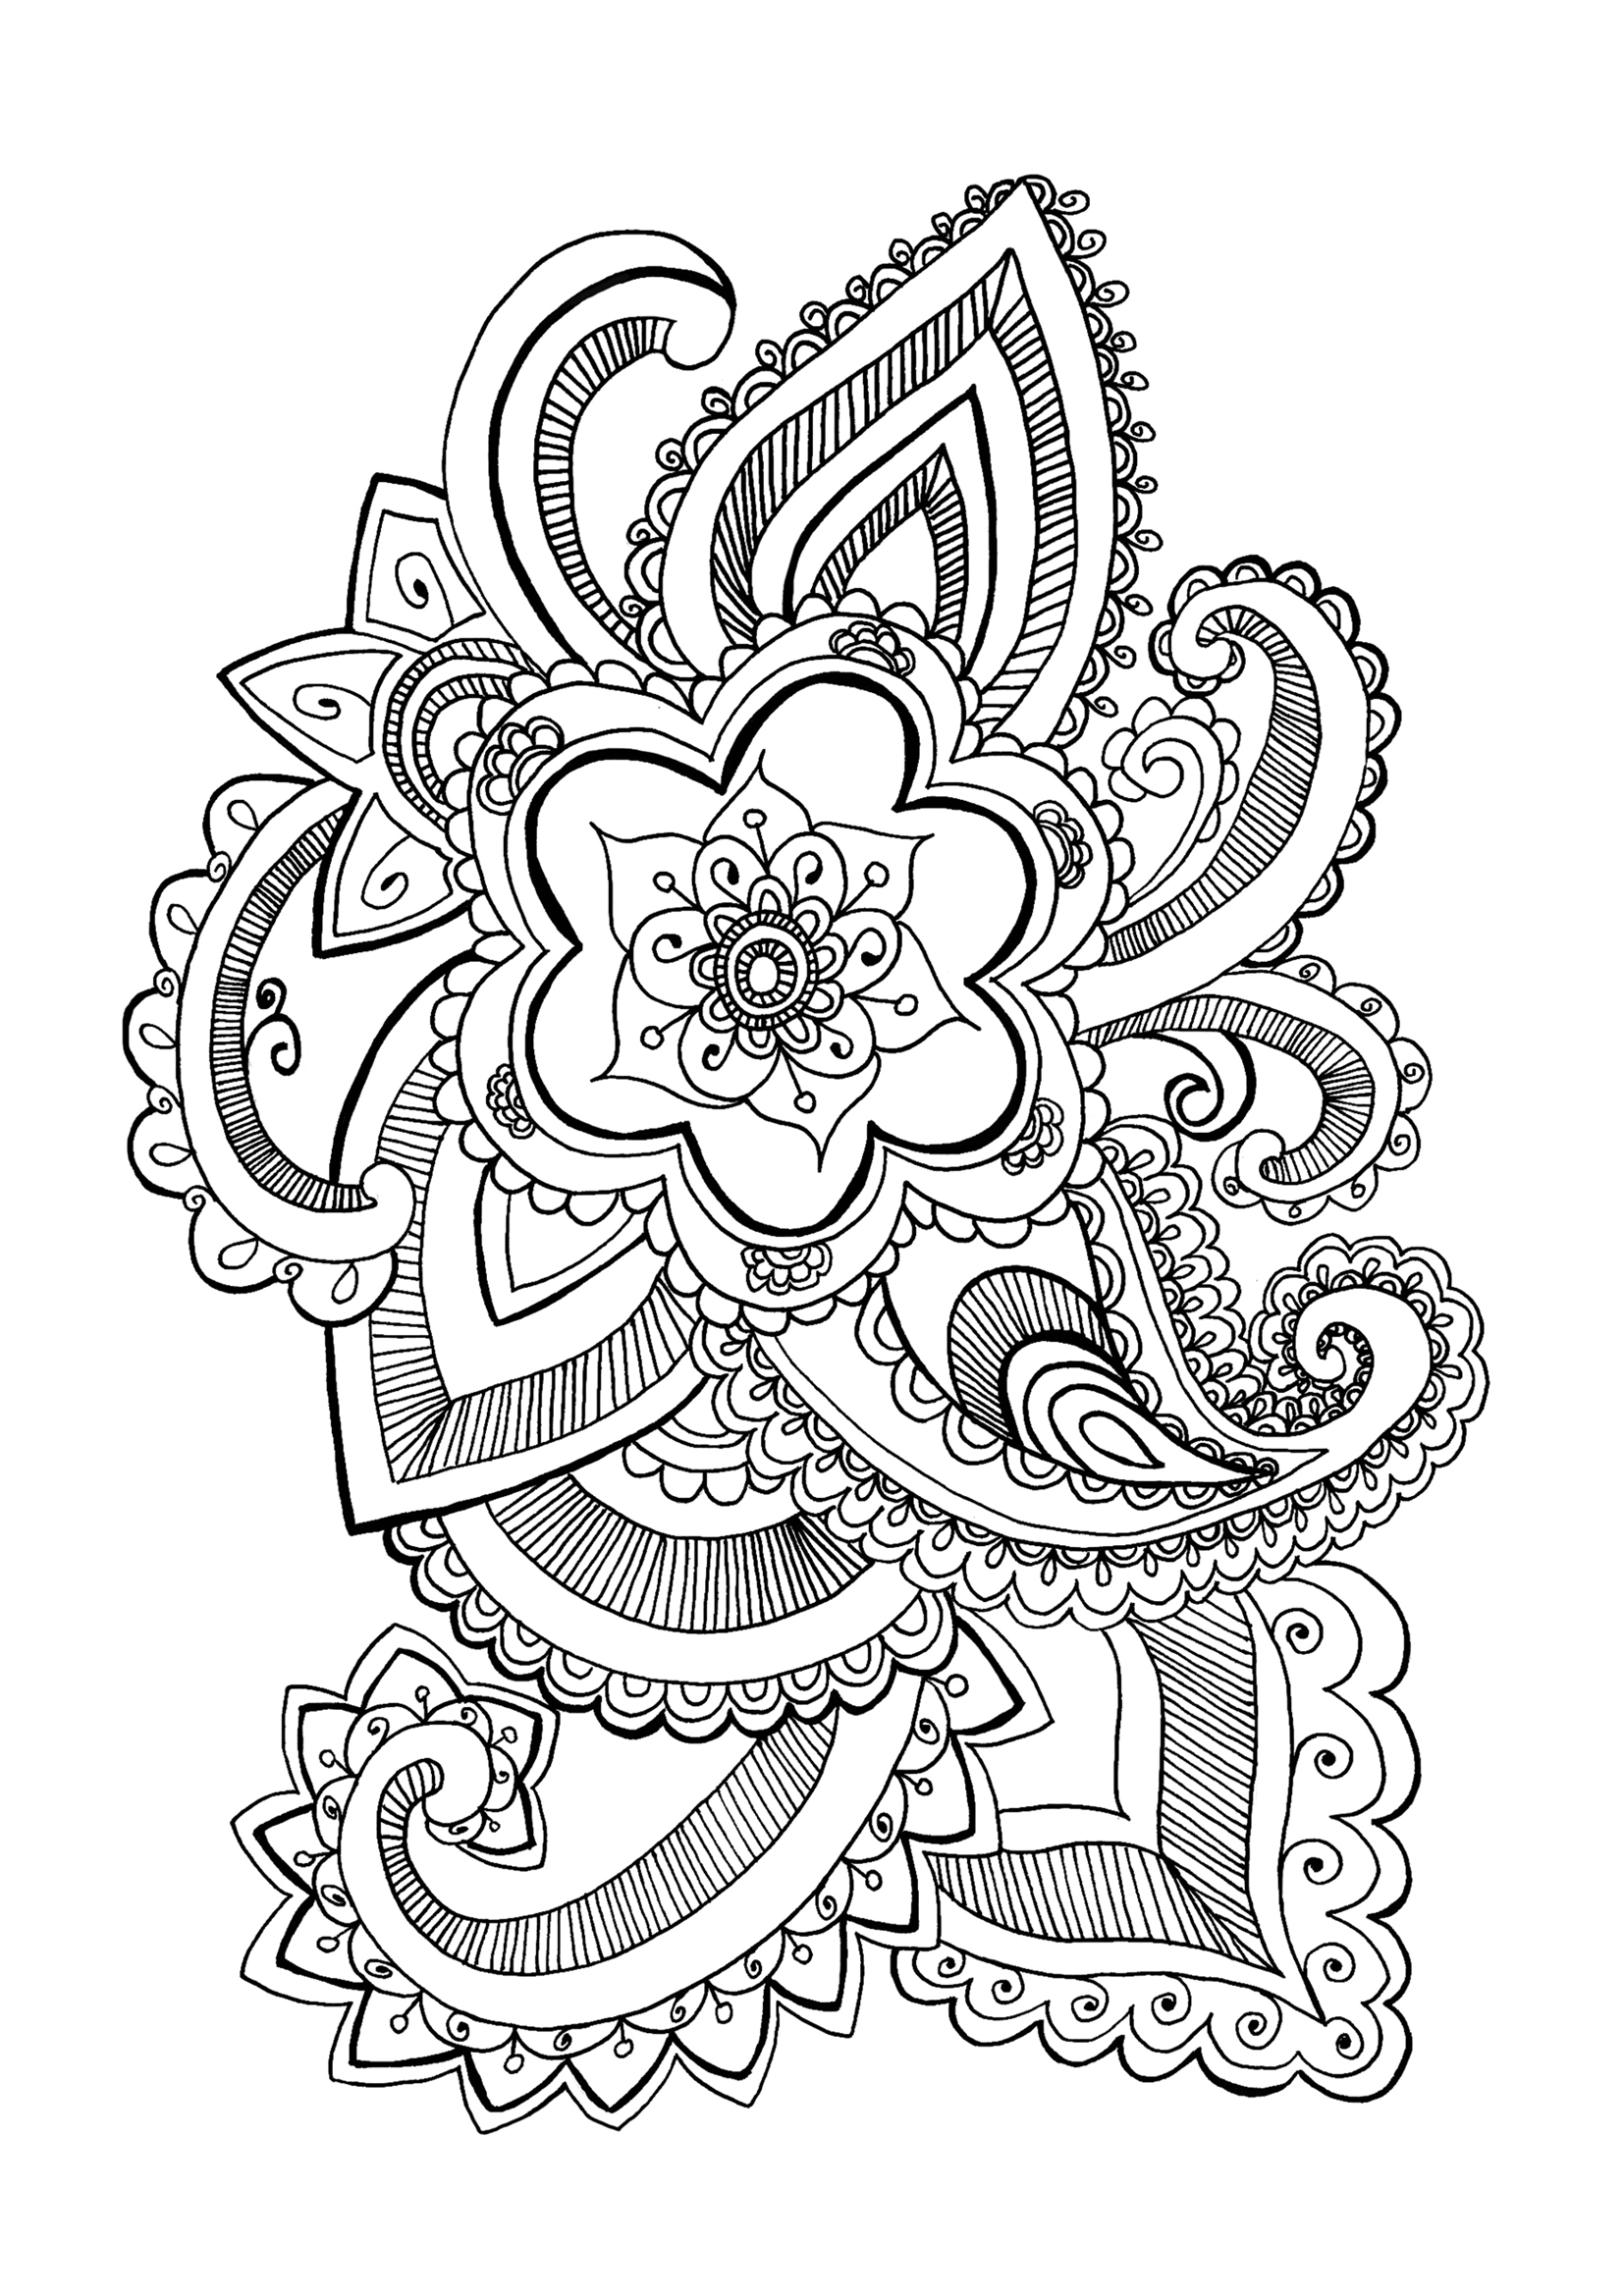 flower celine flowers and vegetation coloring pages for adults